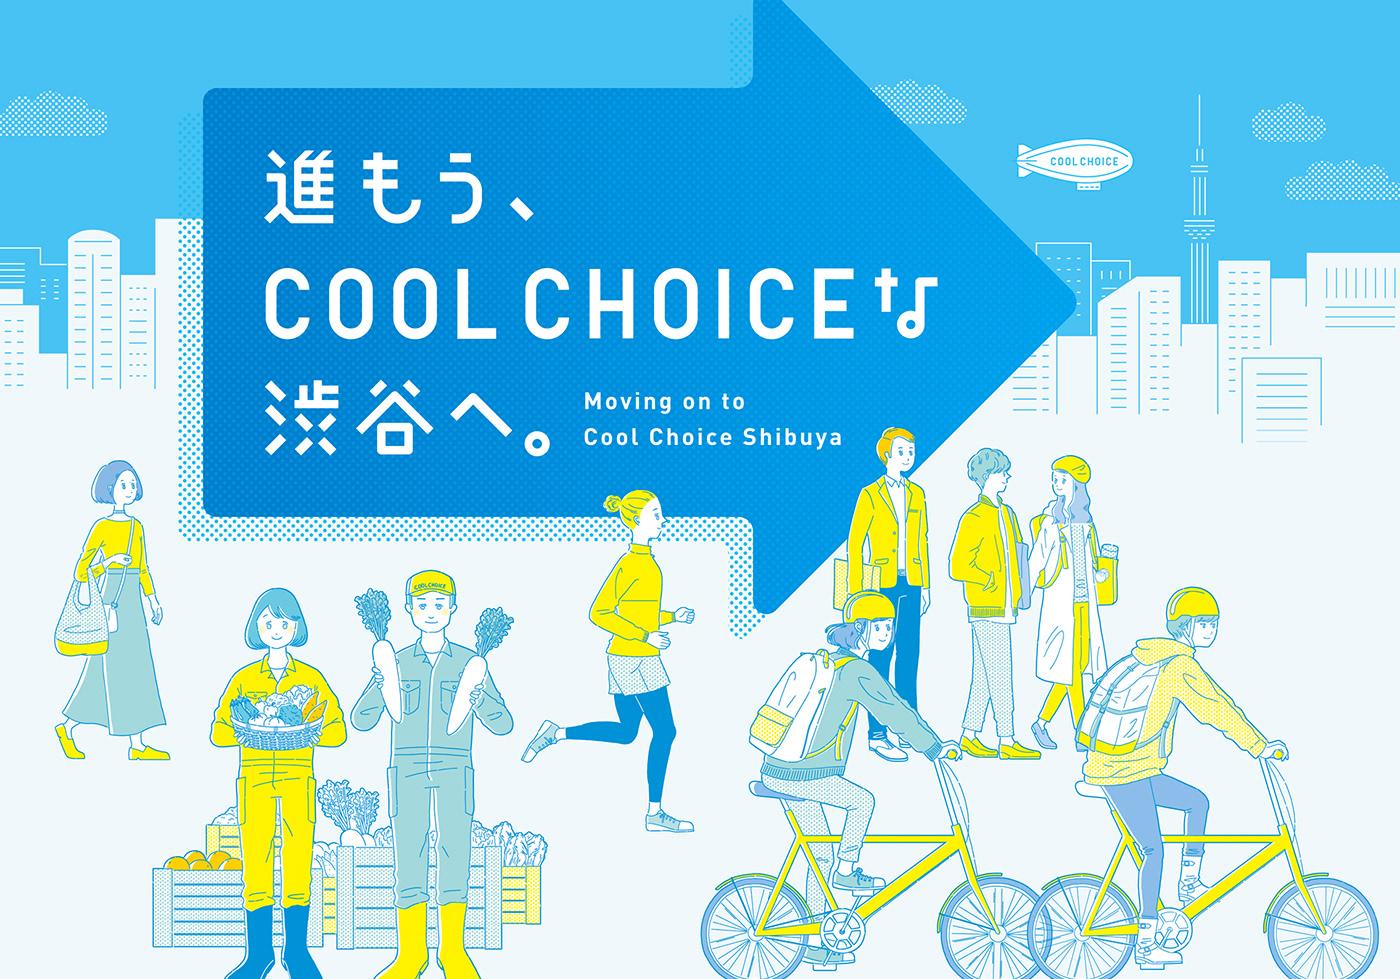 tegusu cool choice shibuya